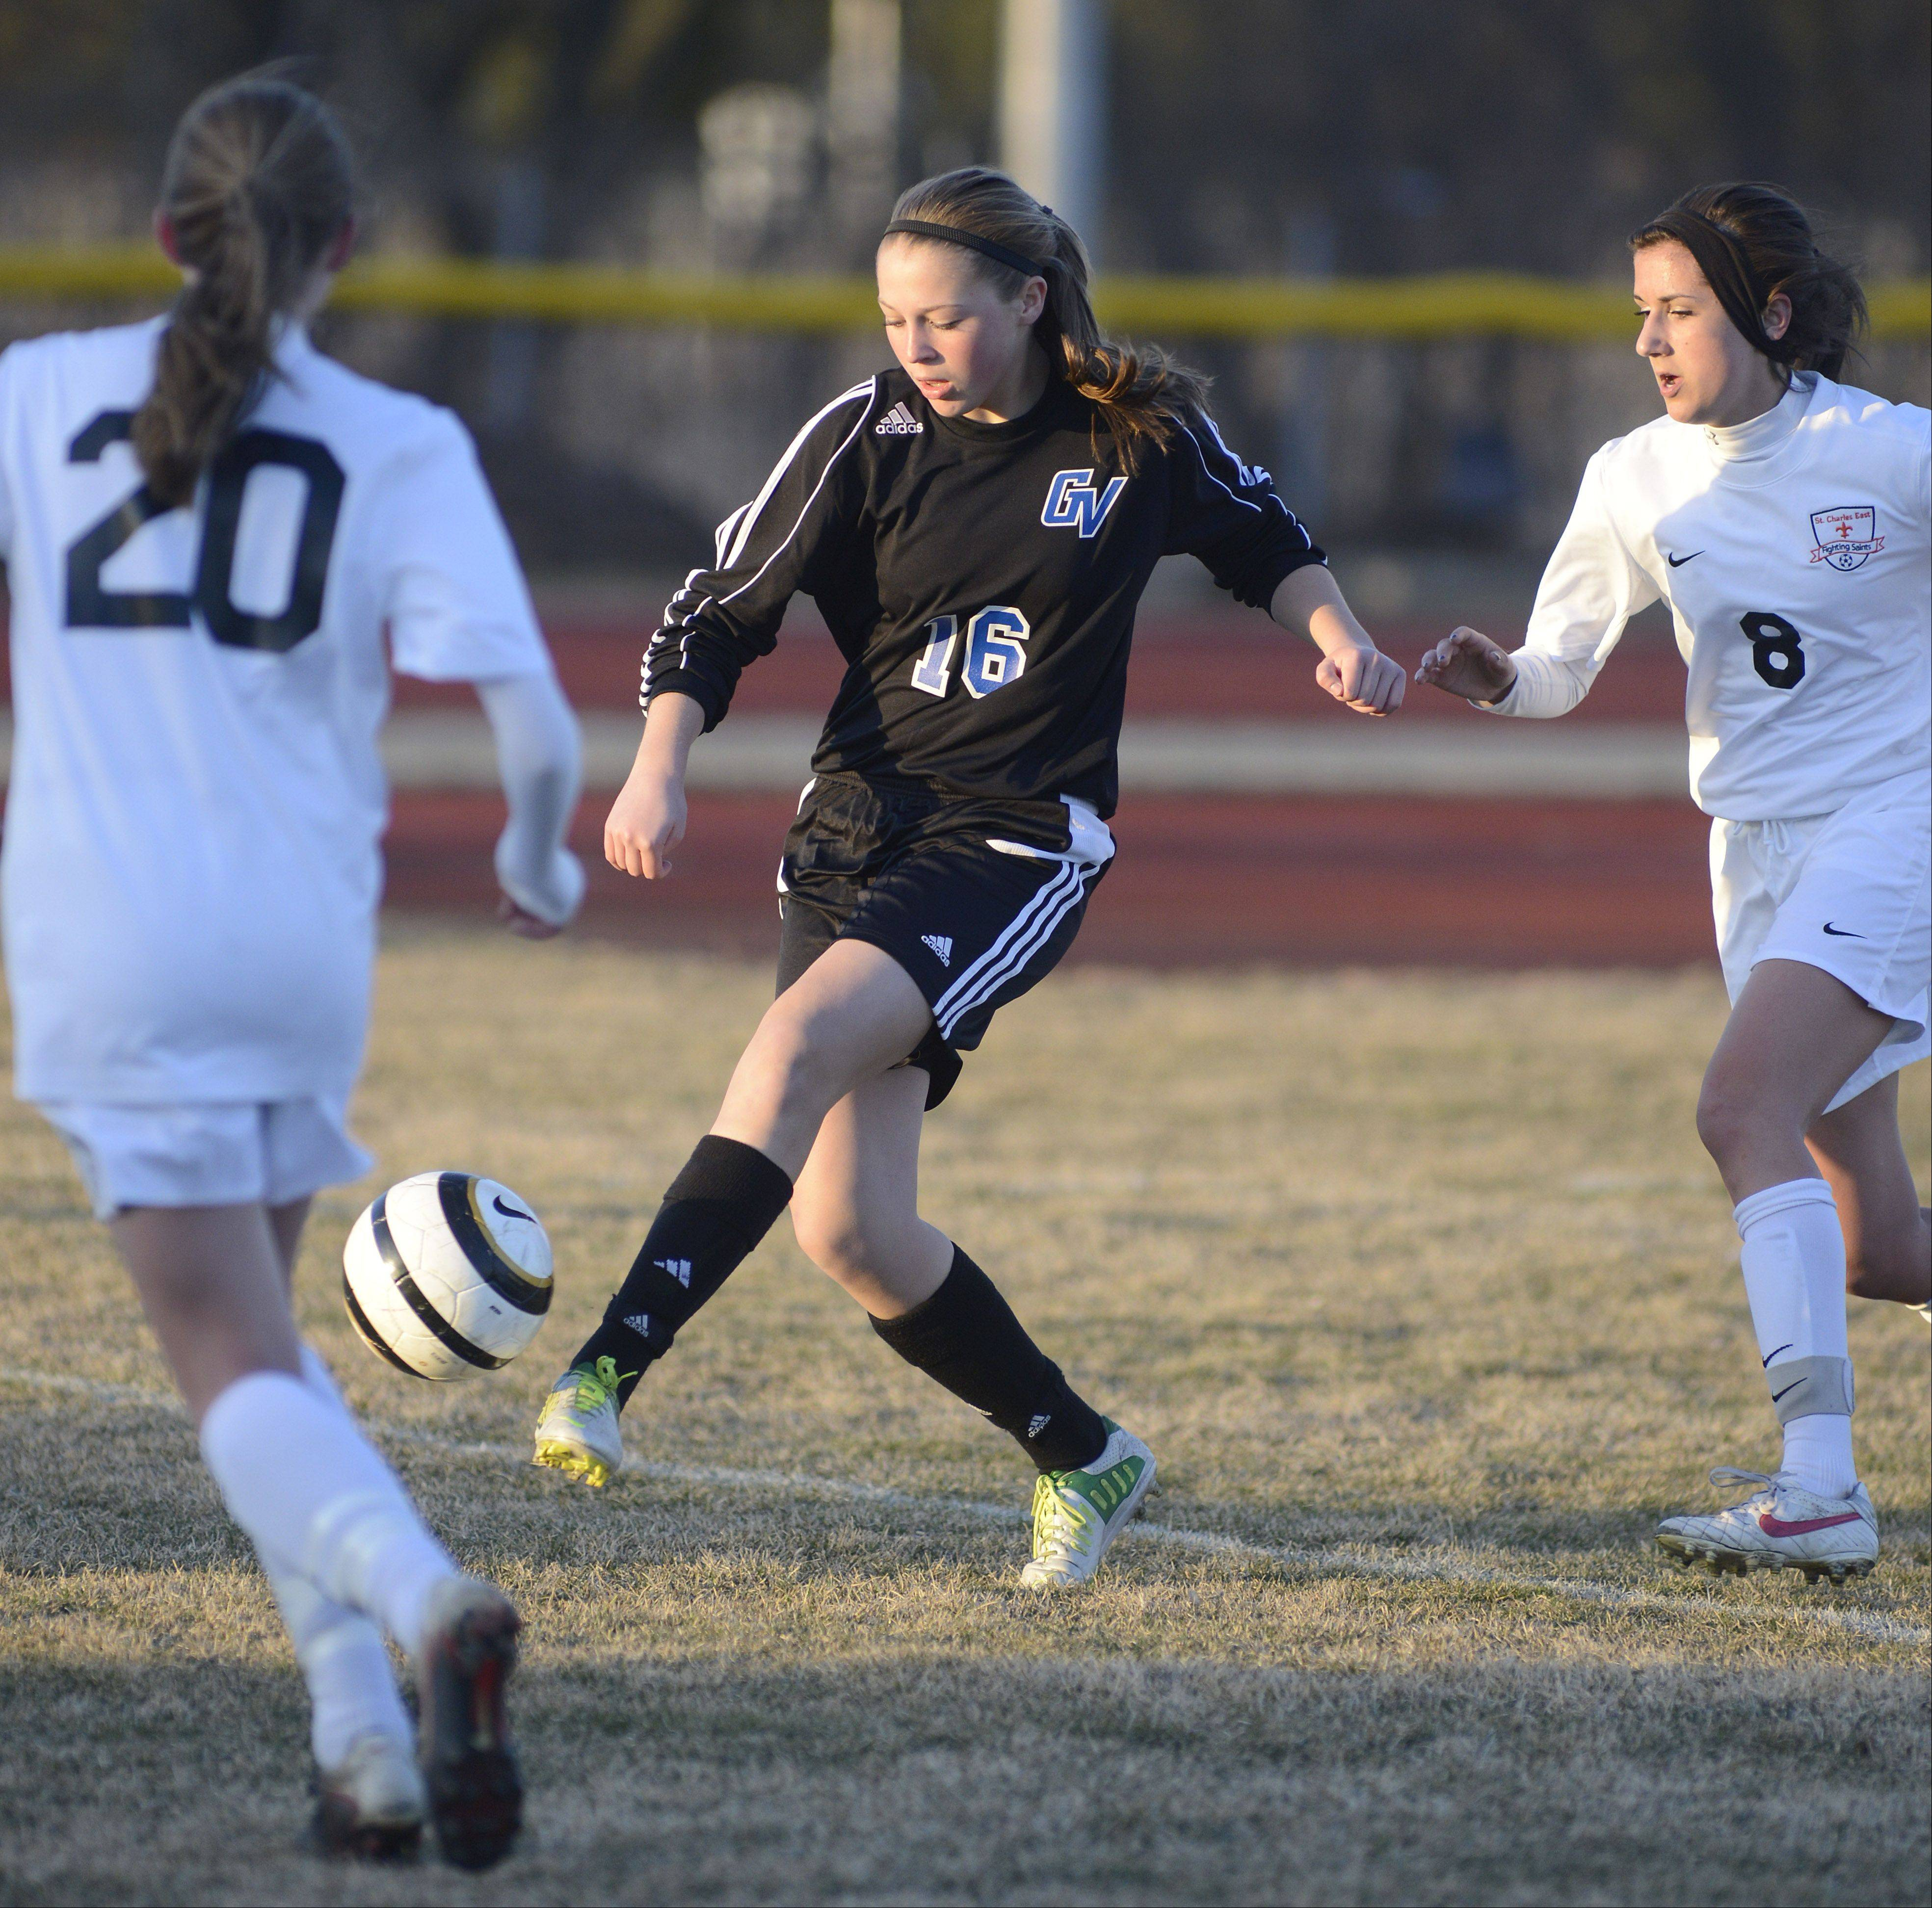 Geneva's Maureen Kozlow attempts to get the ball past St. Charles East's Sam Lombardo, left, and Morgan Settle in the first half on Tuesday, April 2.